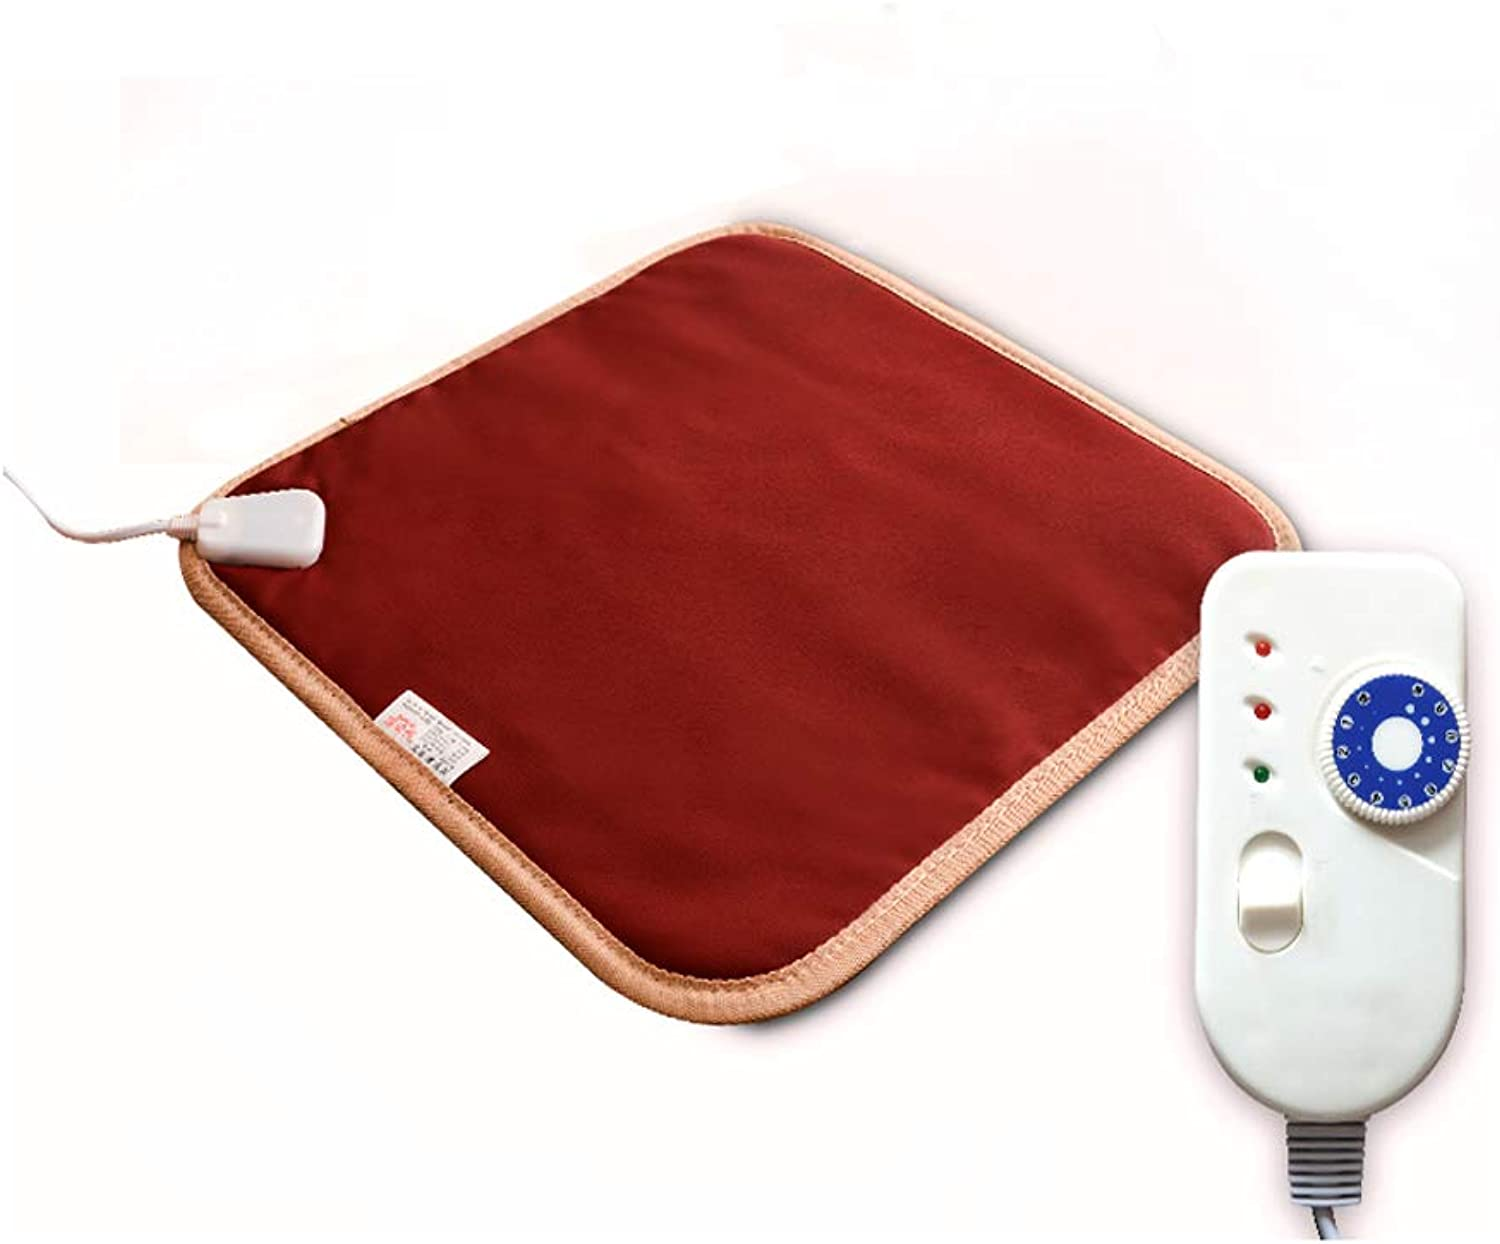 Pet Heat Pad Dog Cat Electric Heating Pad Waterproof 10 Levels of Temperature Adjustable with Chew Resistant Steel Cord 15.7 x23.6 ,Red,M